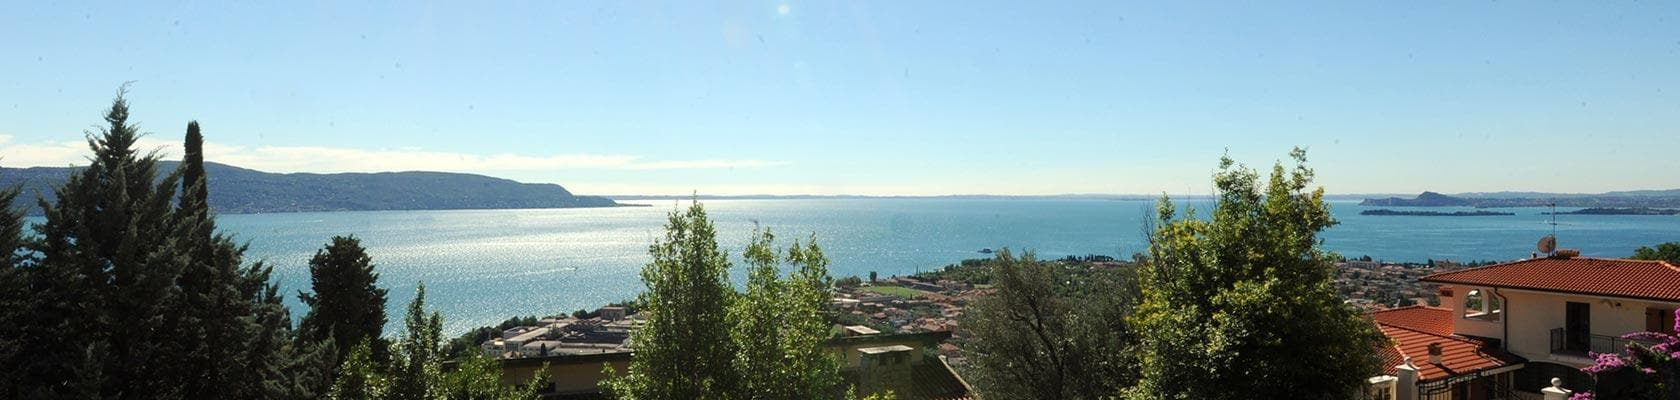 residence toscolano maderno